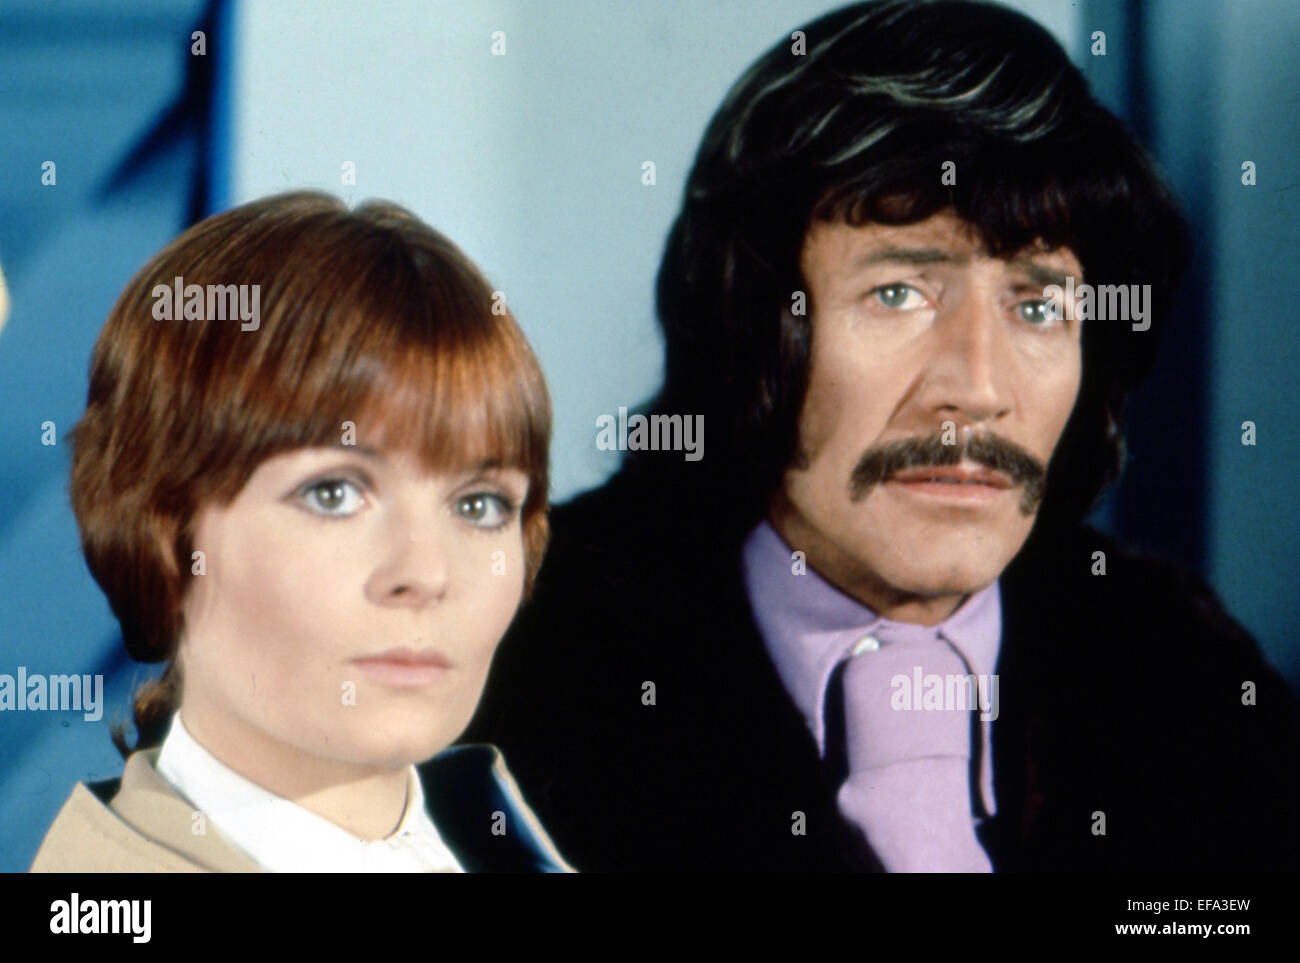 Küchenchefs Tv Now Peter Wyngarde Department S Stockfotos And Peter Wyngarde